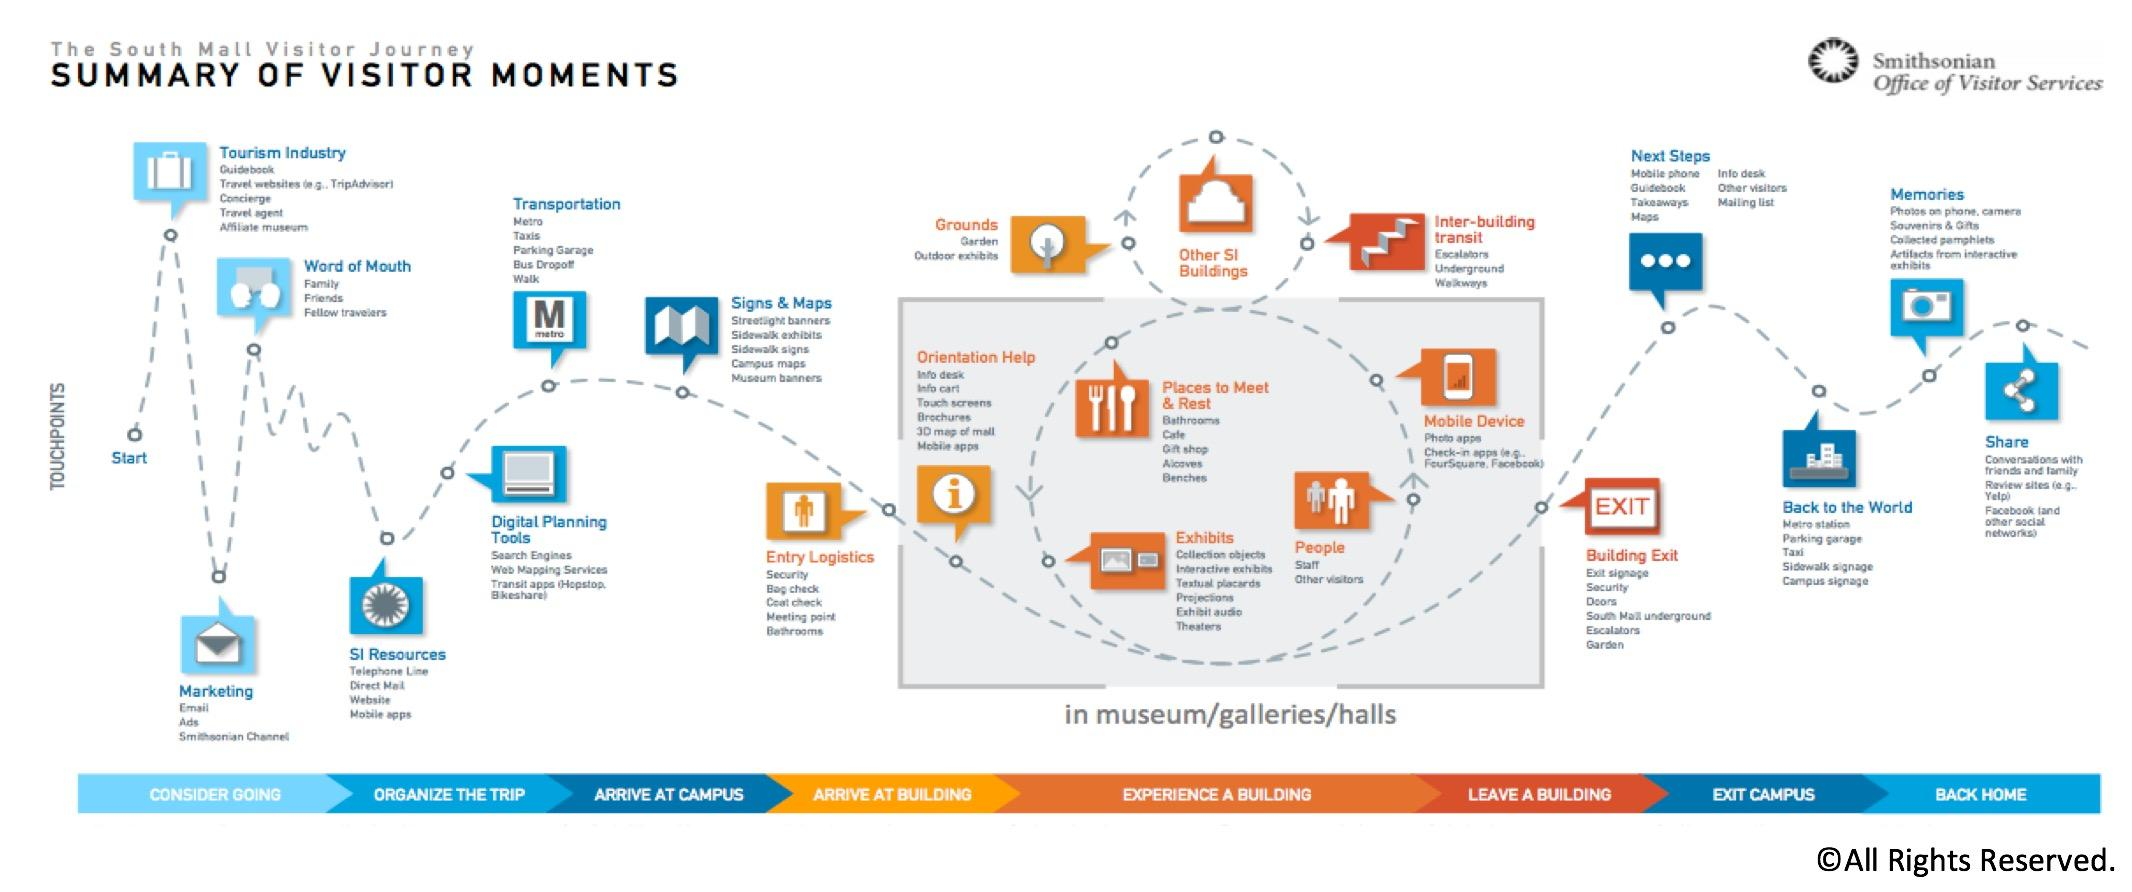 Smithsonian multichannel customer journey map